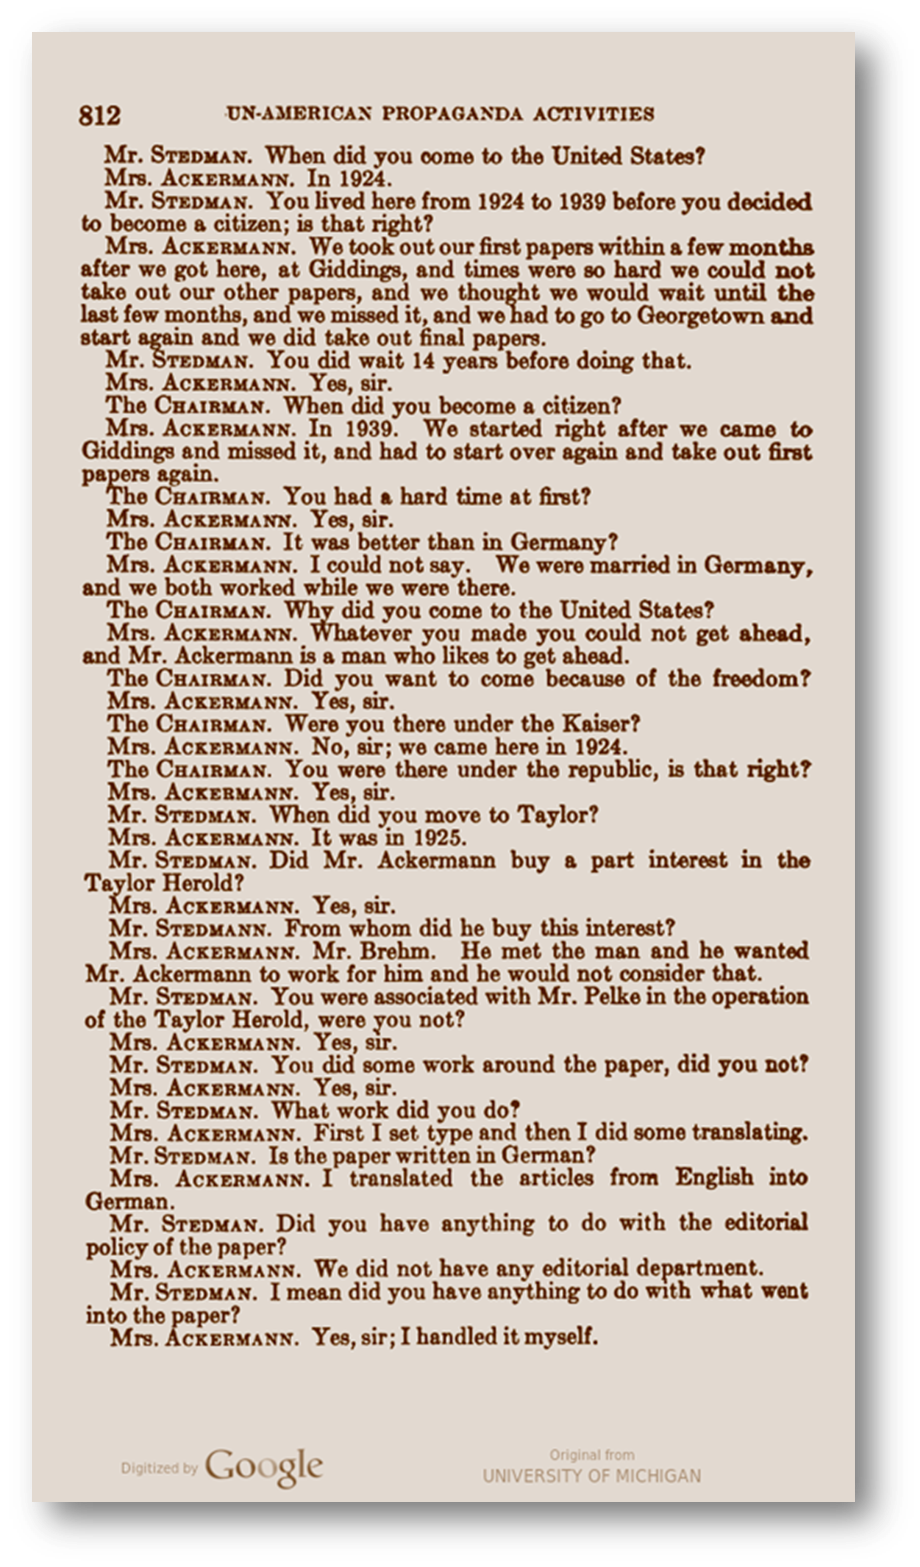 Frieda Ackermann's testimony before the U.S. House Un-American Activities Committe - click to enlarge.   Visit Google Books for a digitized version of the Ackermann's testimony before the U.S. House Un-American Activities Committee from the University of Michigan Government Documents Collection.